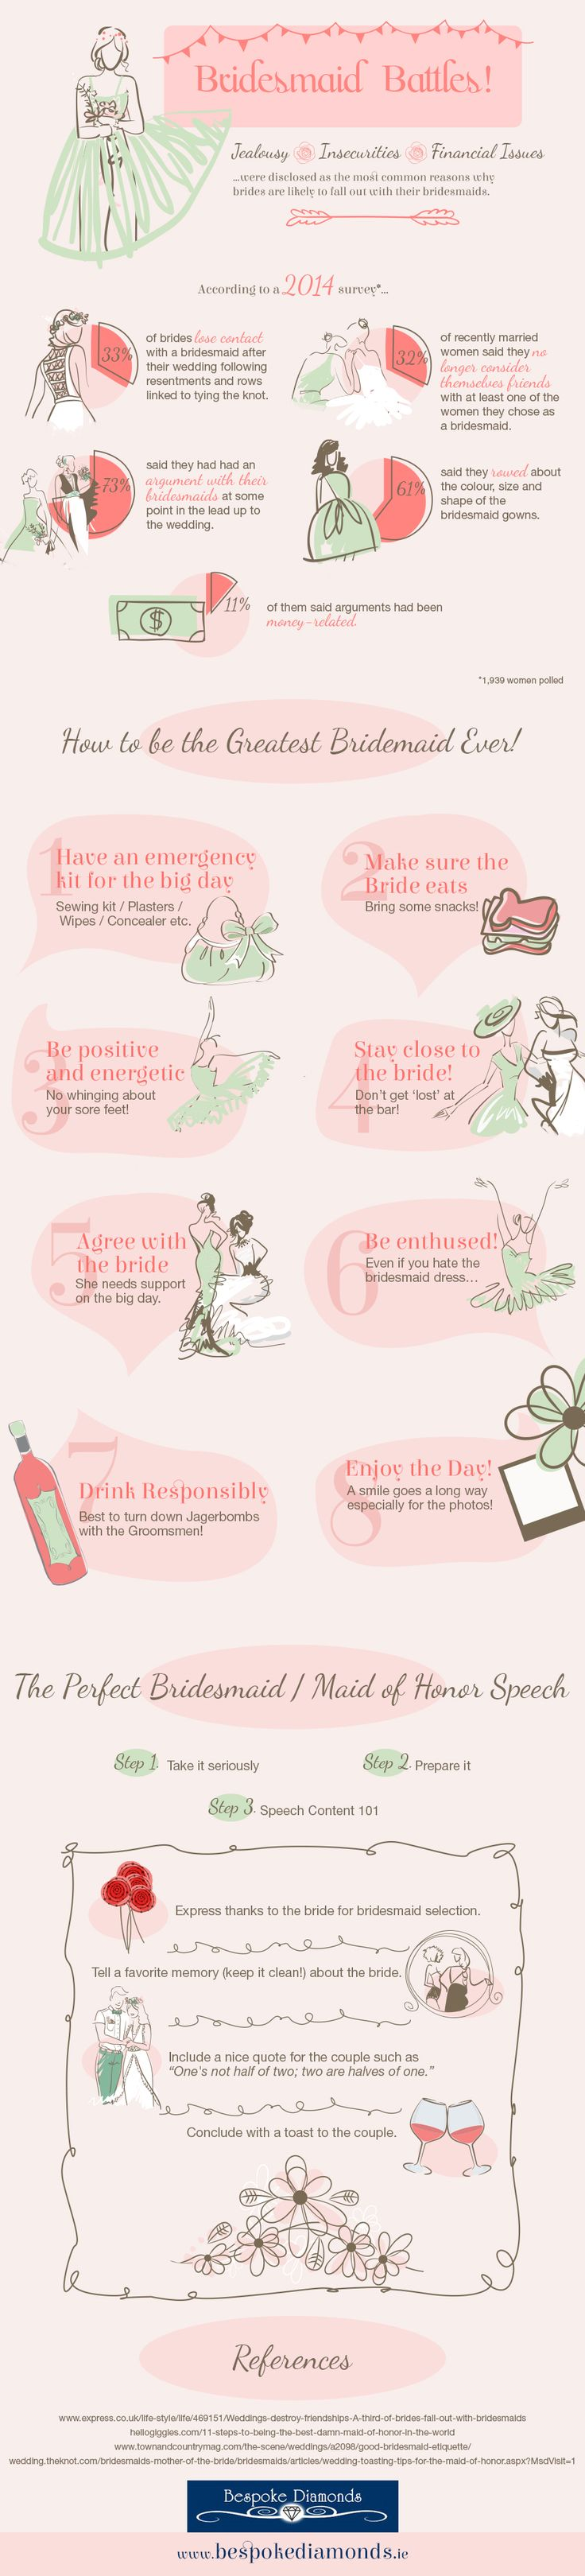 Best 25 Wedding Speech Etiquette Ideas On Pinterest